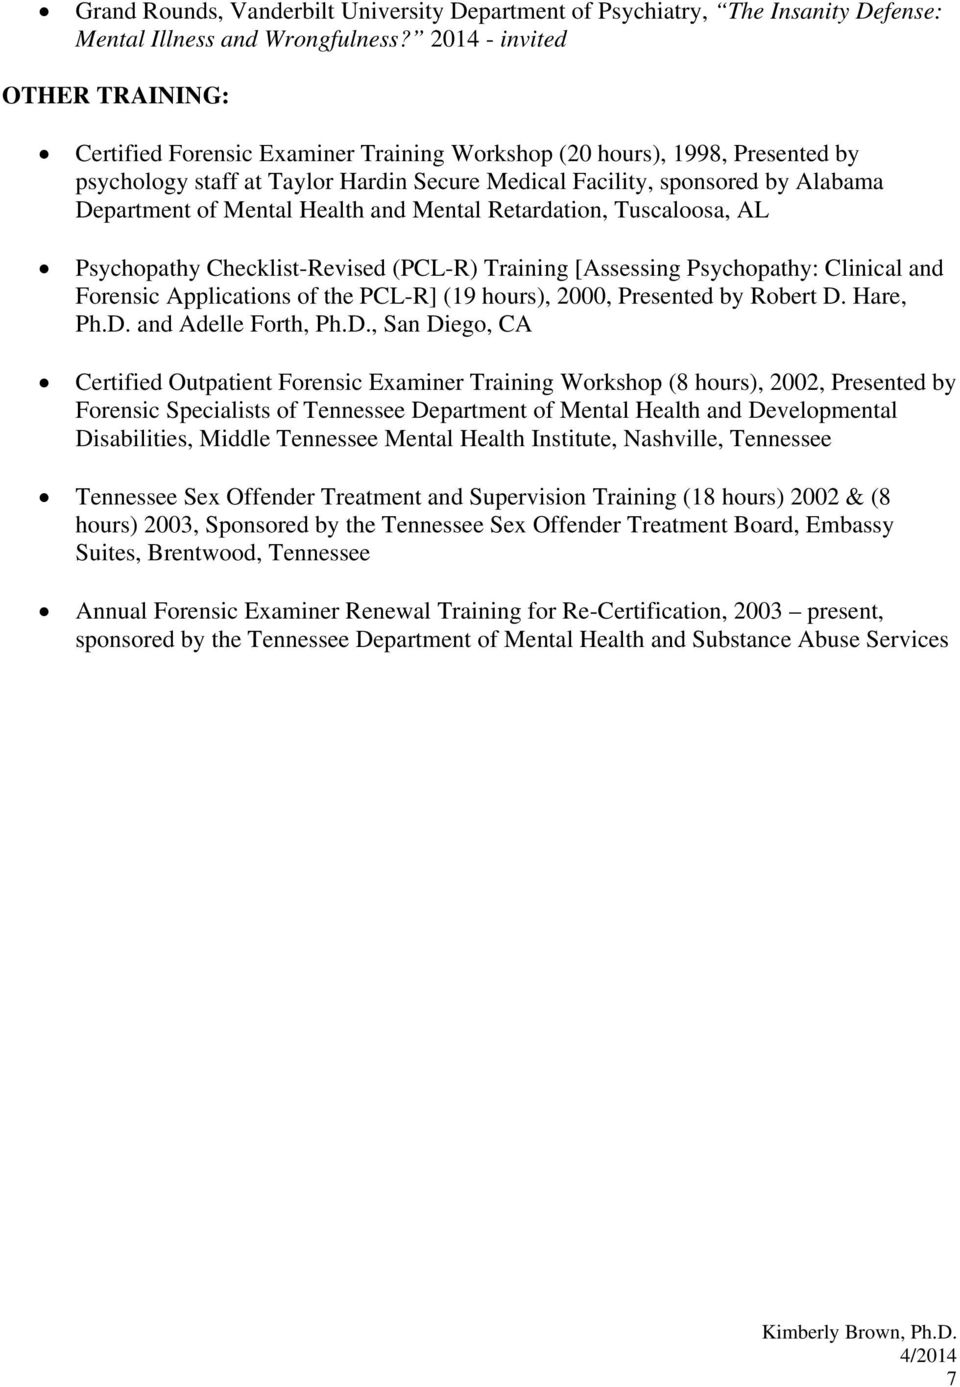 of Mental Health and Mental Retardation, Tuscaloosa, AL Psychopathy Checklist-Revised (PCL-R) Training [Assessing Psychopathy: Clinical and Forensic Applications of the PCL-R] (19 hours), 2000,